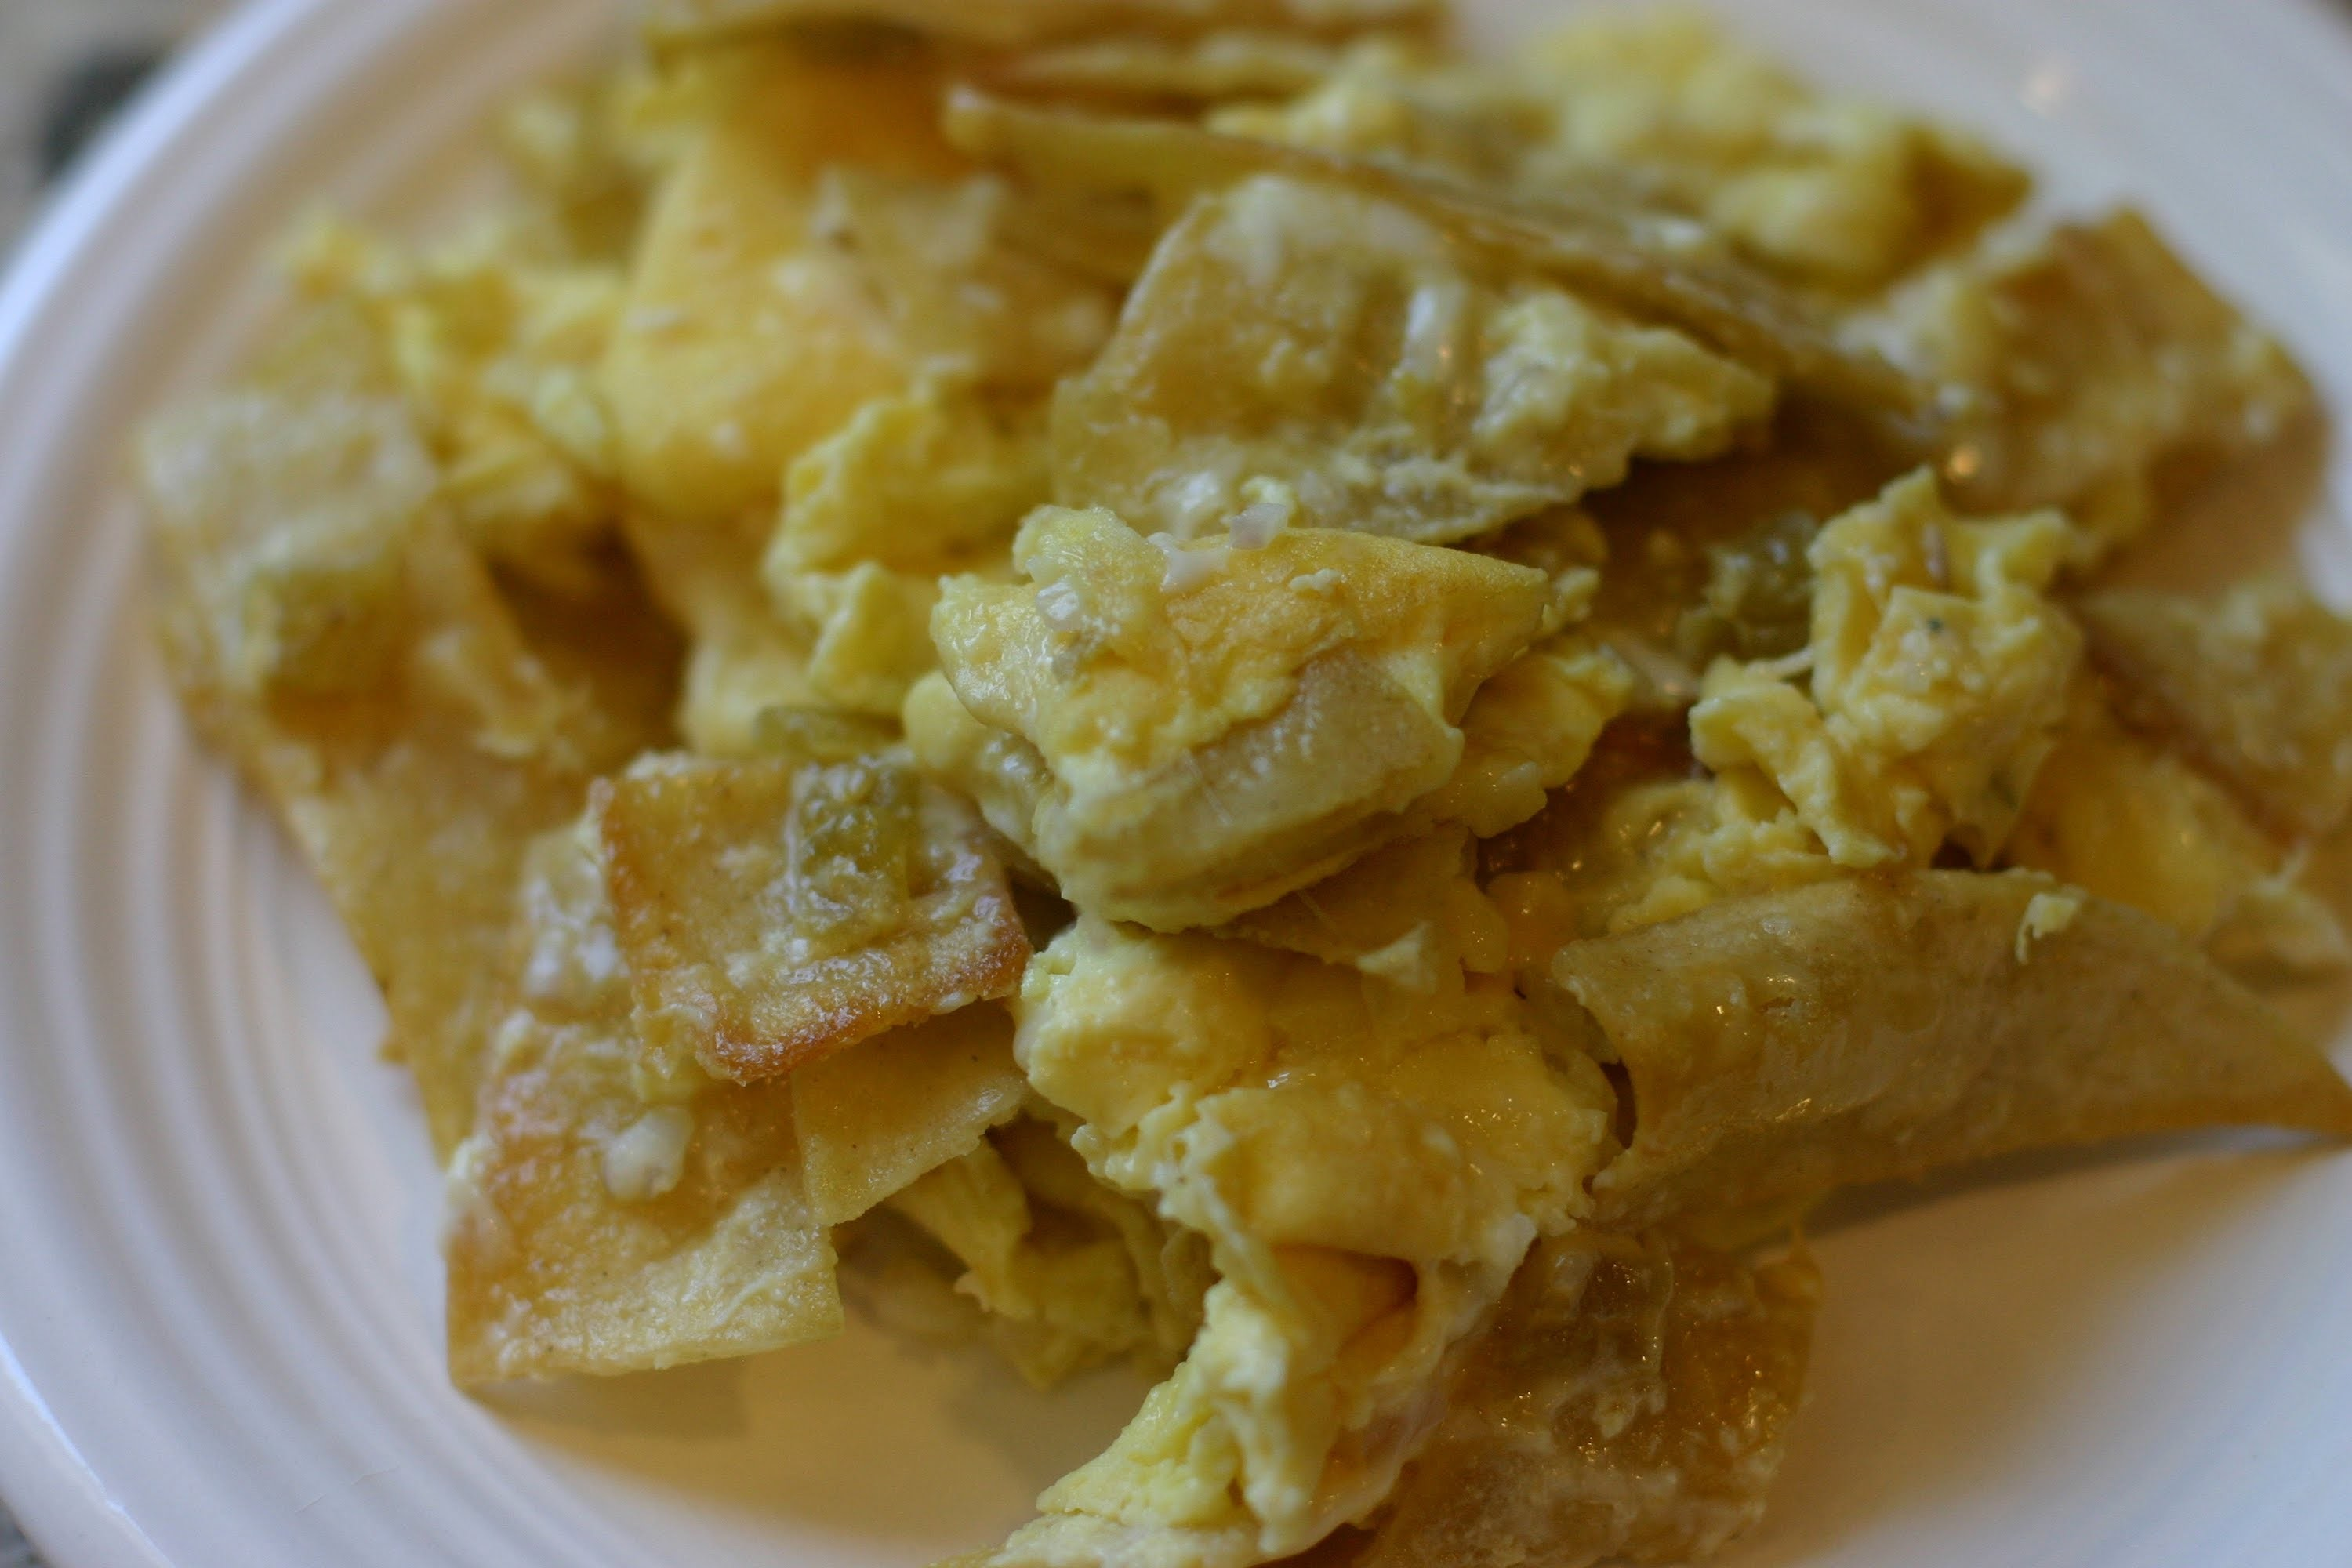 How To Make Migas - Mexican Eggs and Tortillas by Rockin Robin